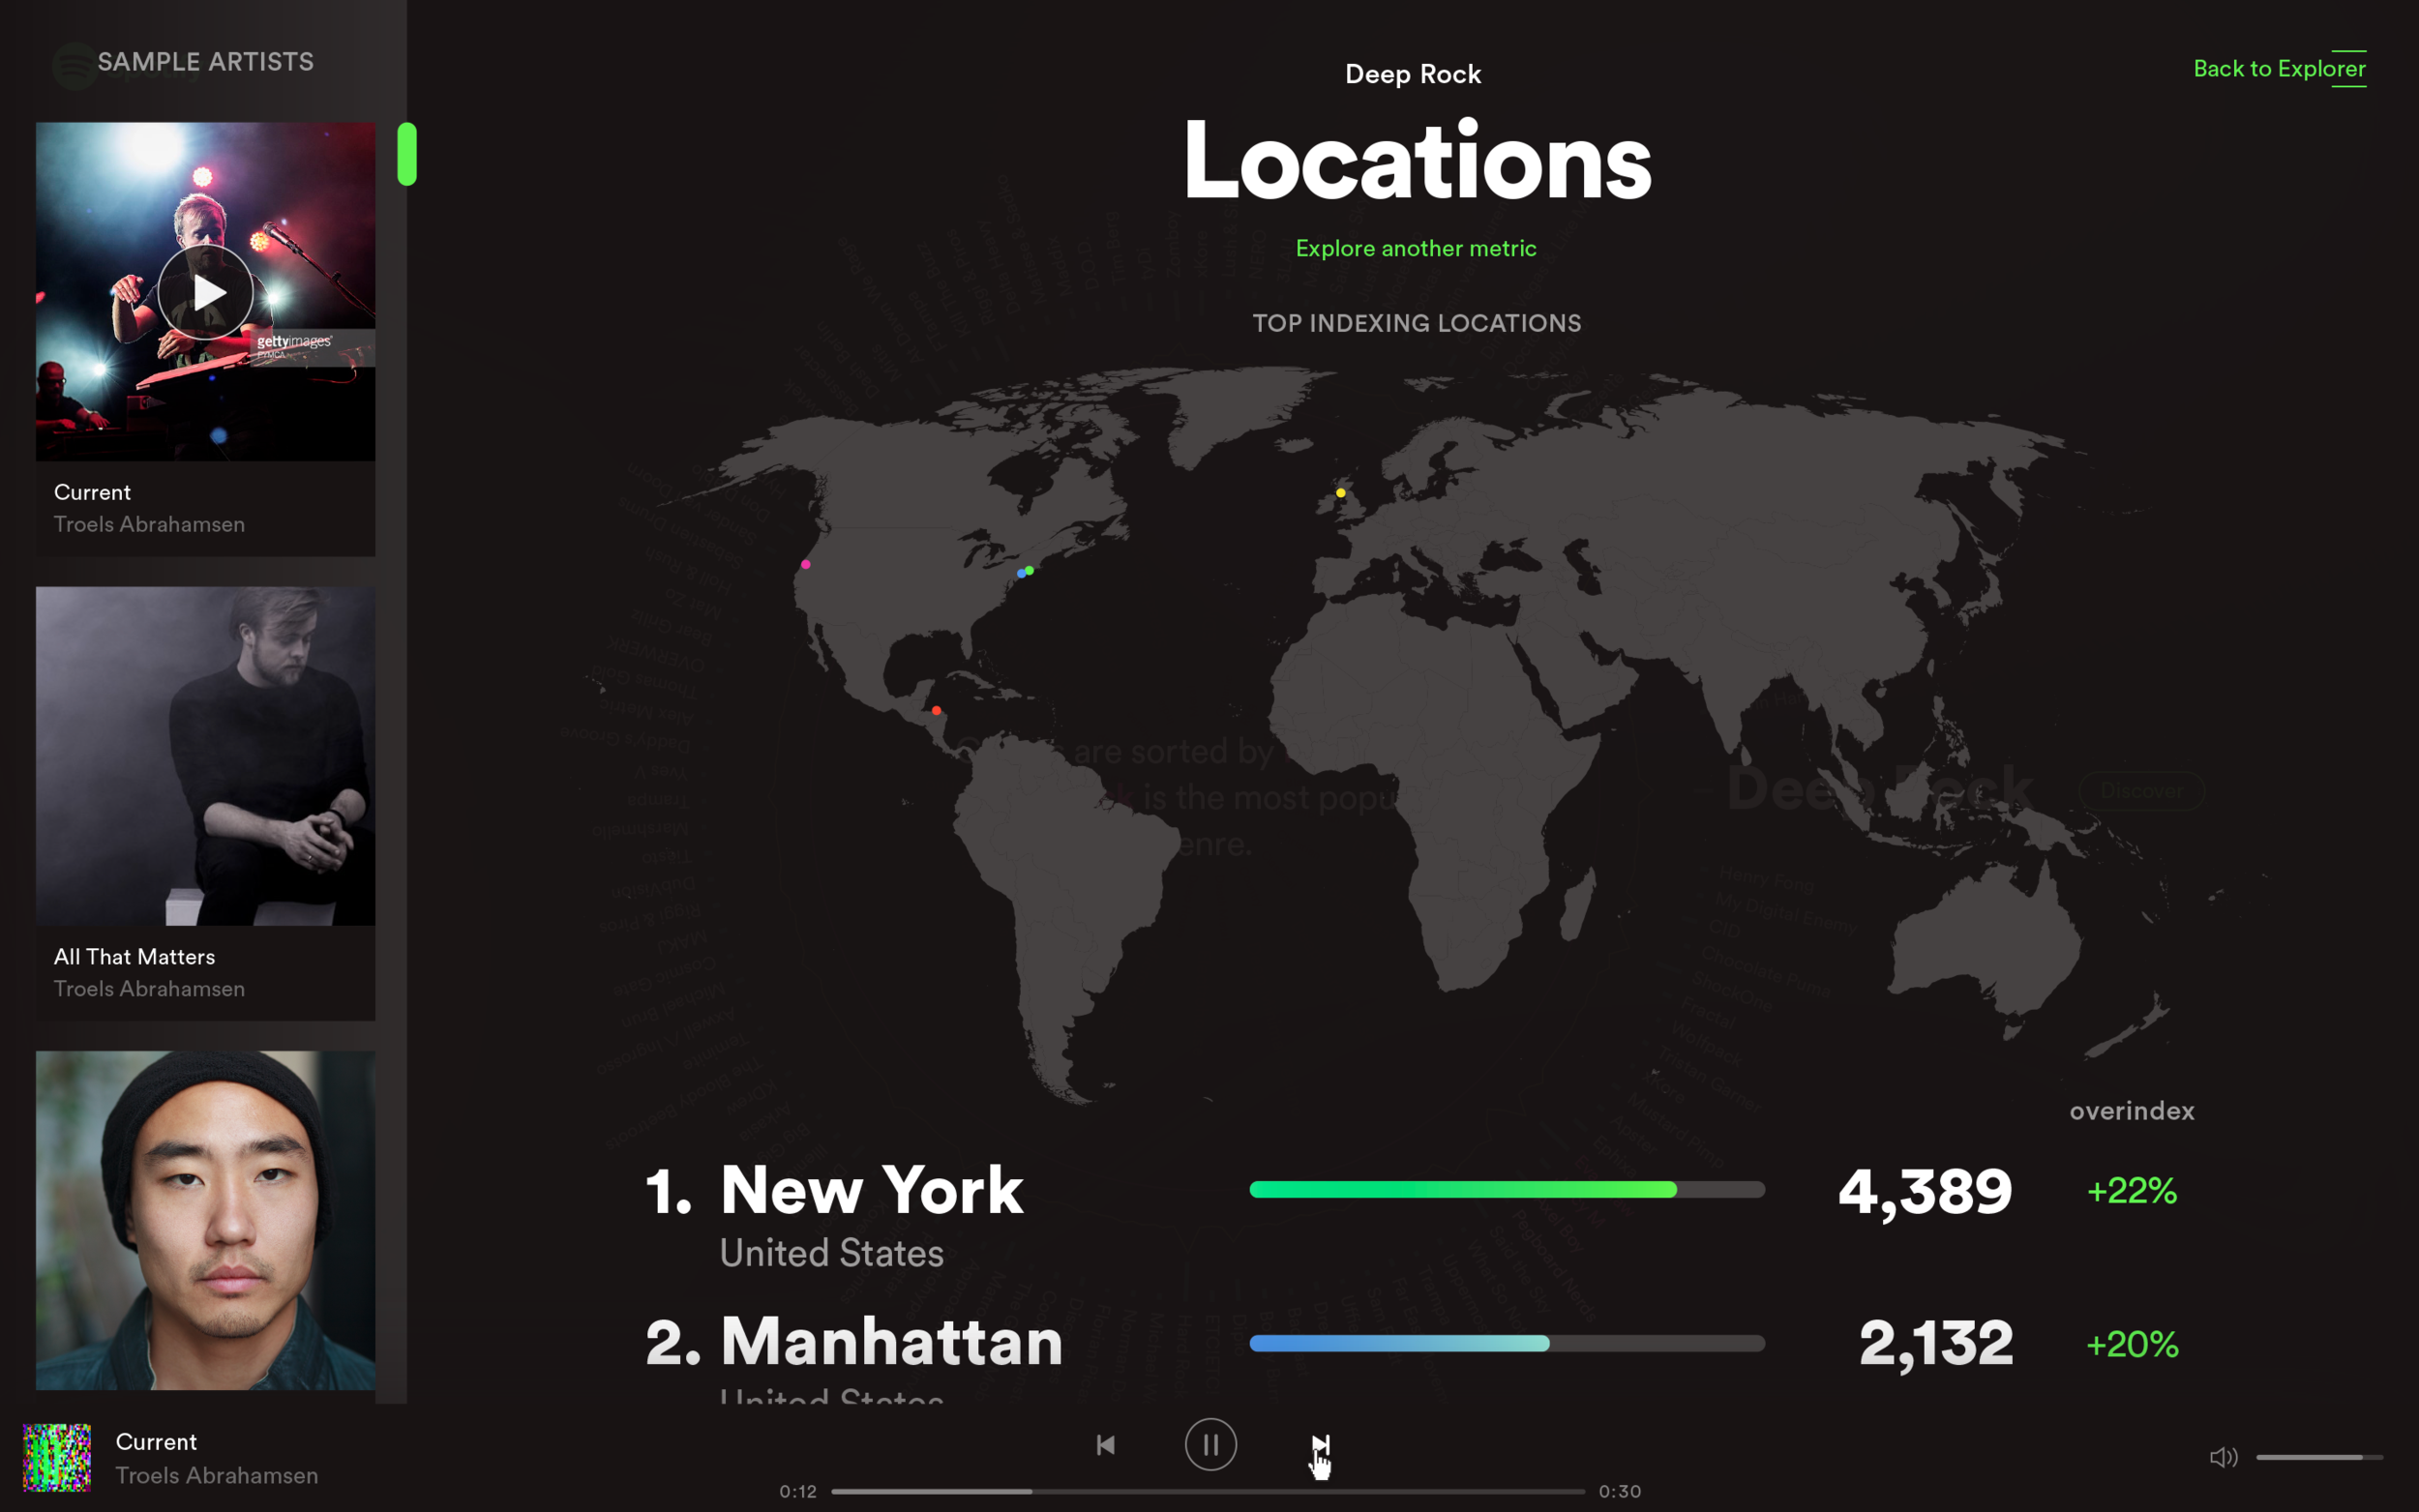 Improved geolocation data